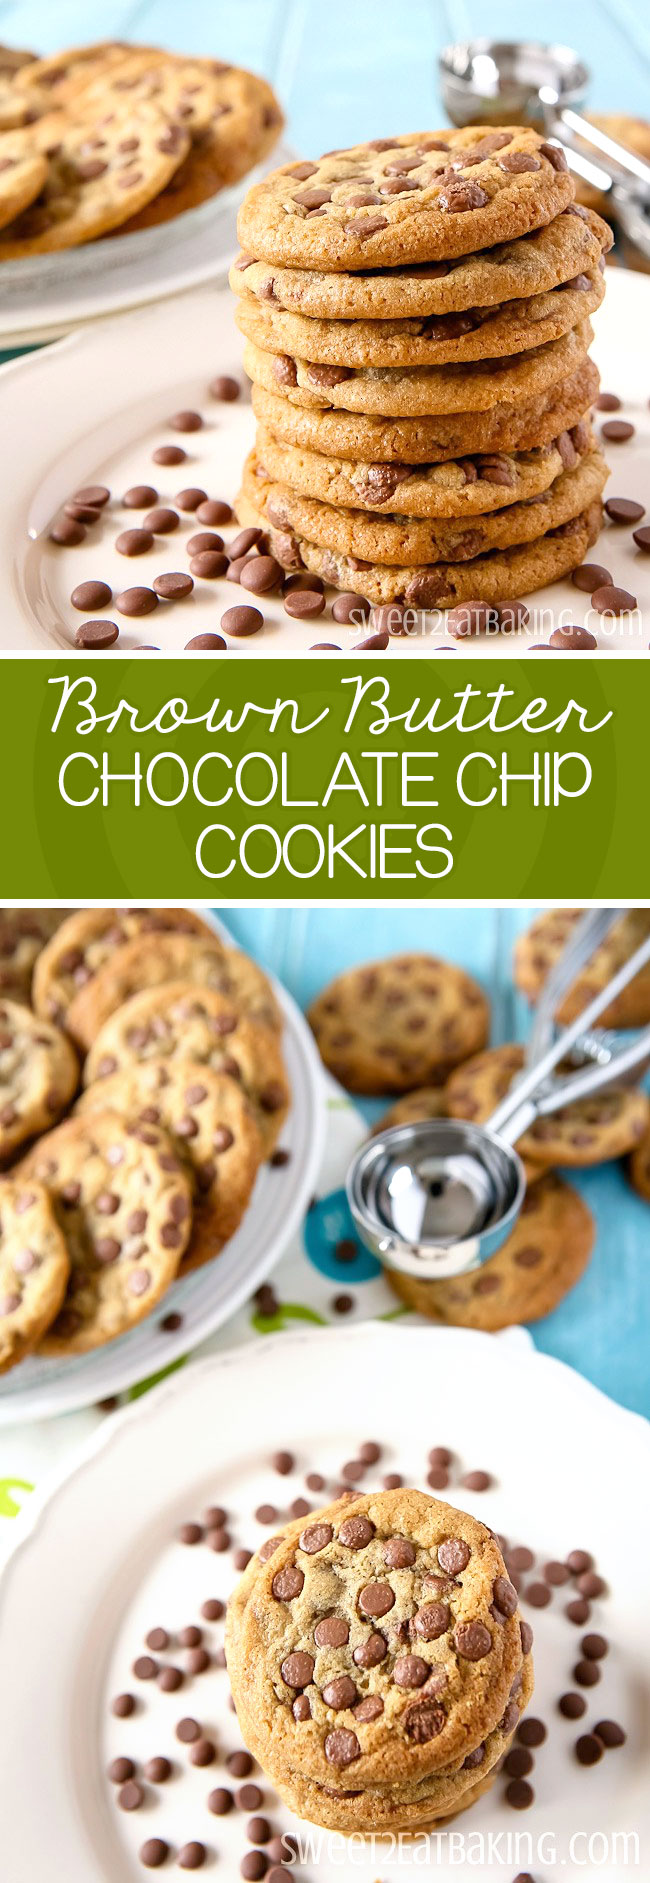 Brown Butter Chocolate Chip Cookies Recipe by Sweet2EatBaking.com | These are my families favourite go to recipe. Made with brown butter which really amps up their flavour. Loaded with chocolate chips, these cookies are moist, chewy and super indulgent.